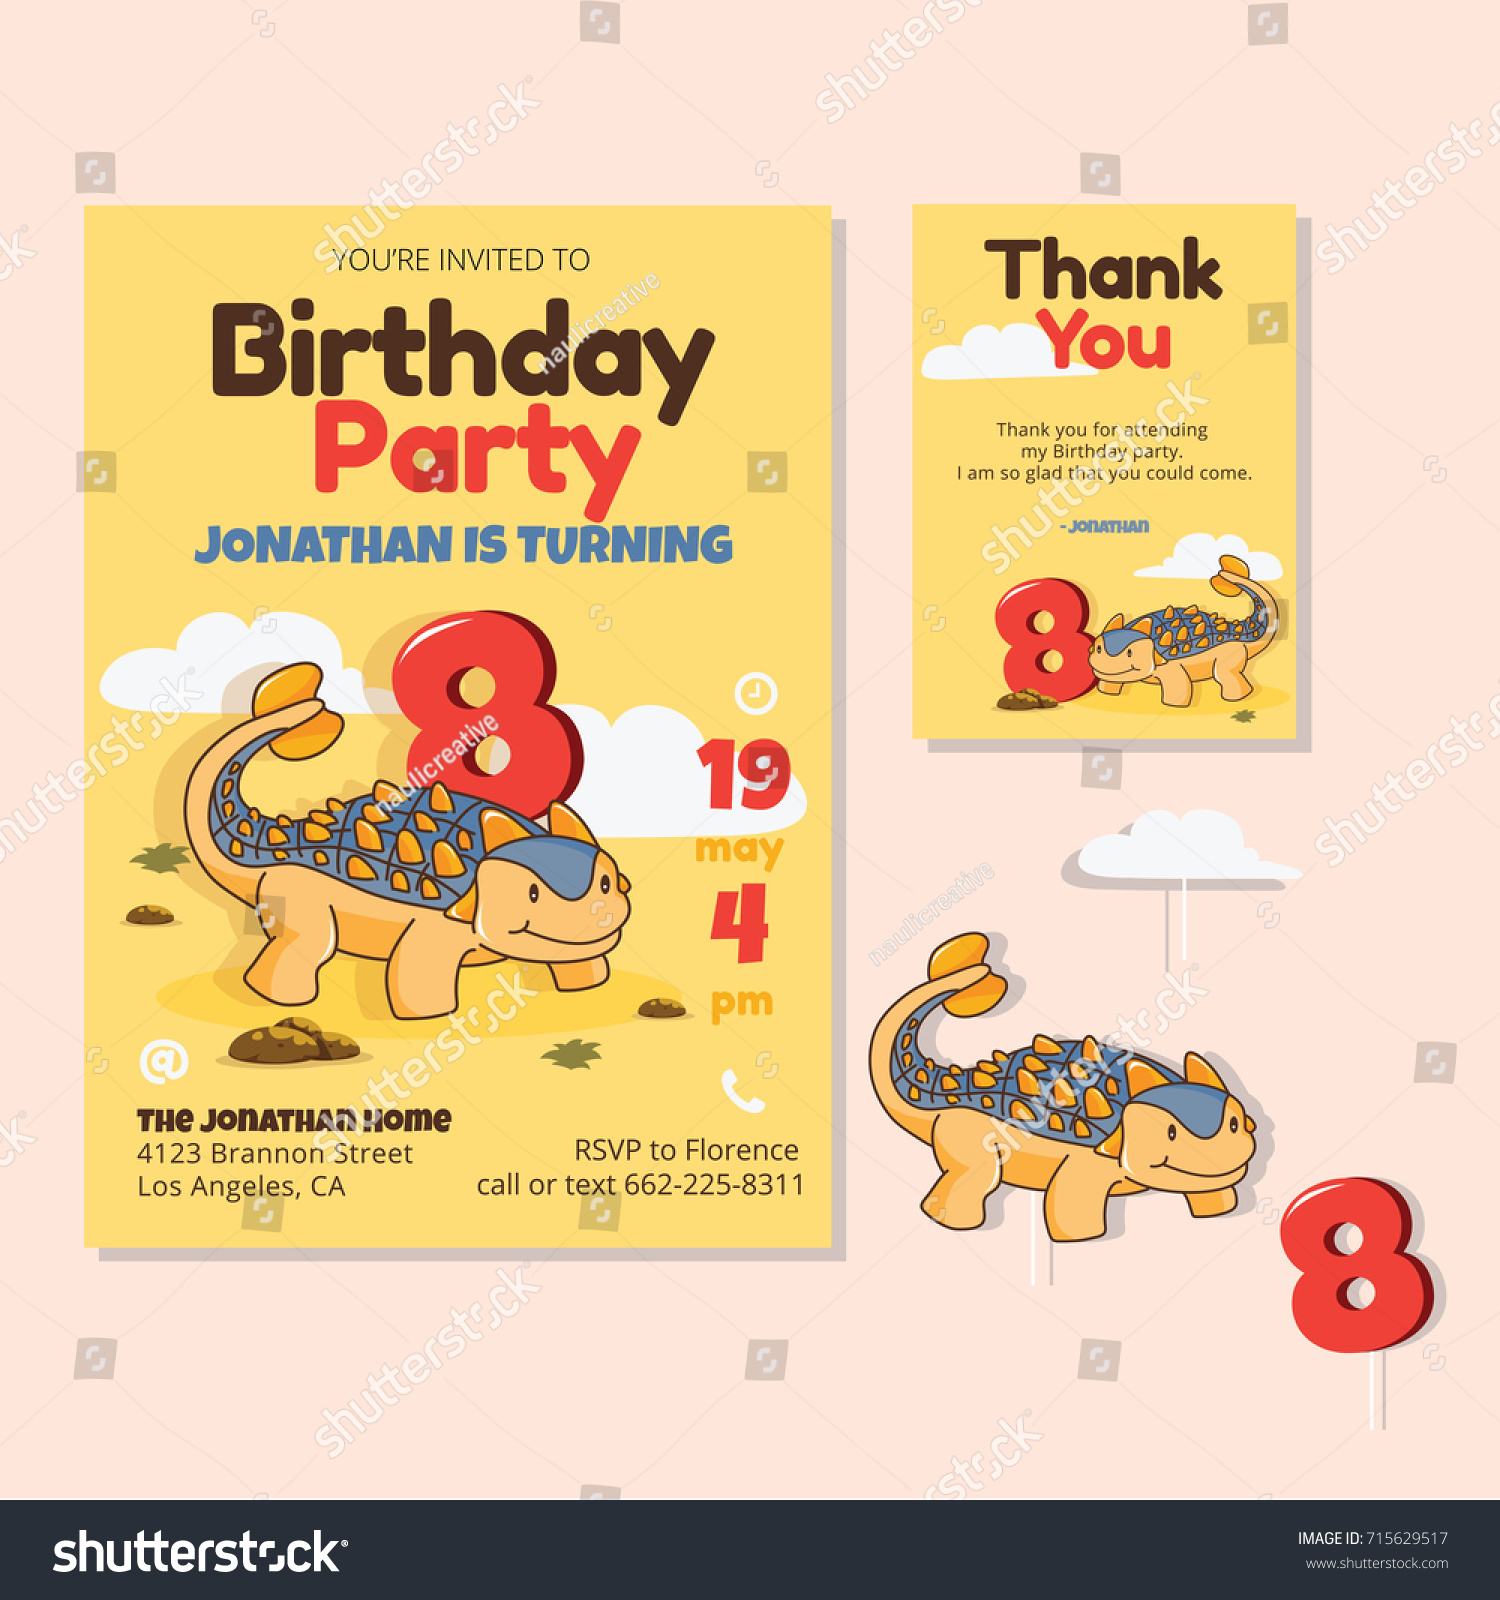 8th Birthday Party Invitations Images - Party Invitations Ideas